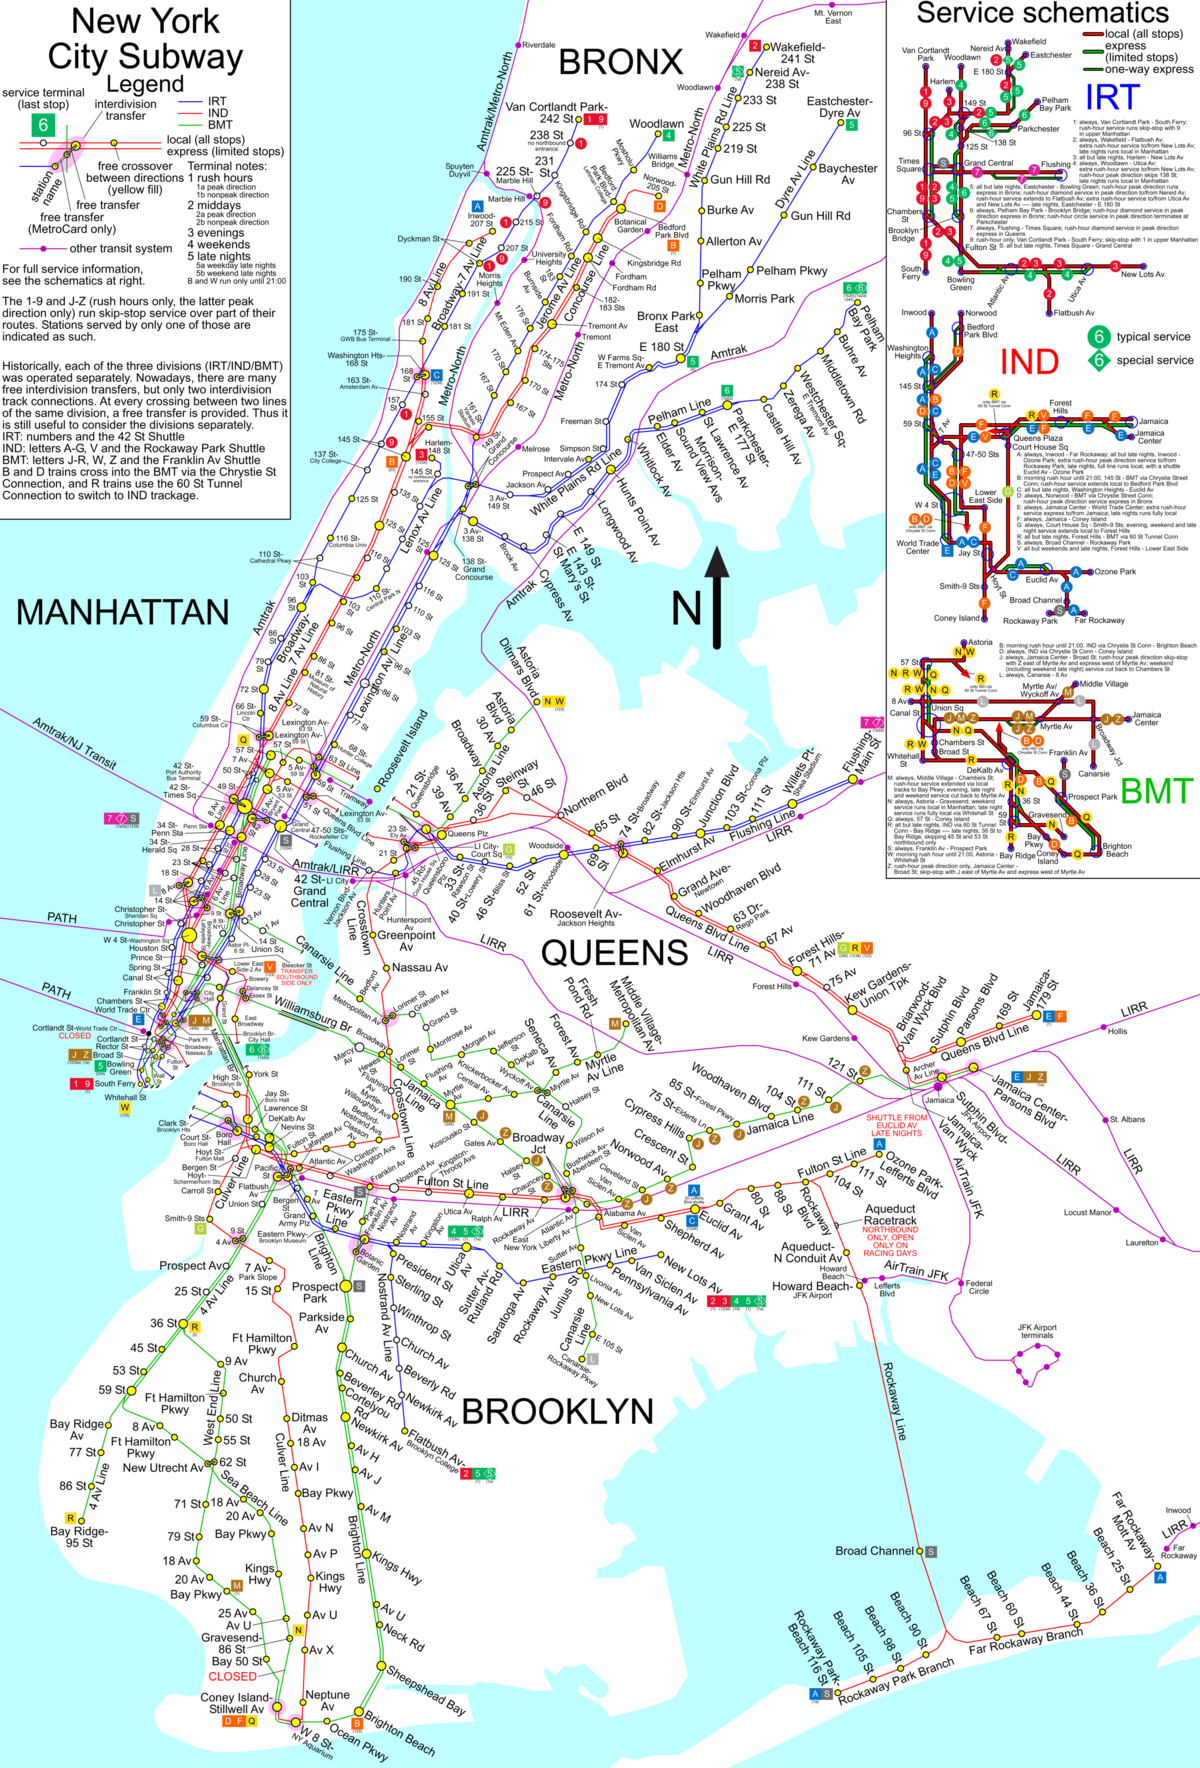 Prospect Park Subway Map.New York City Subway Wikimedia Commons